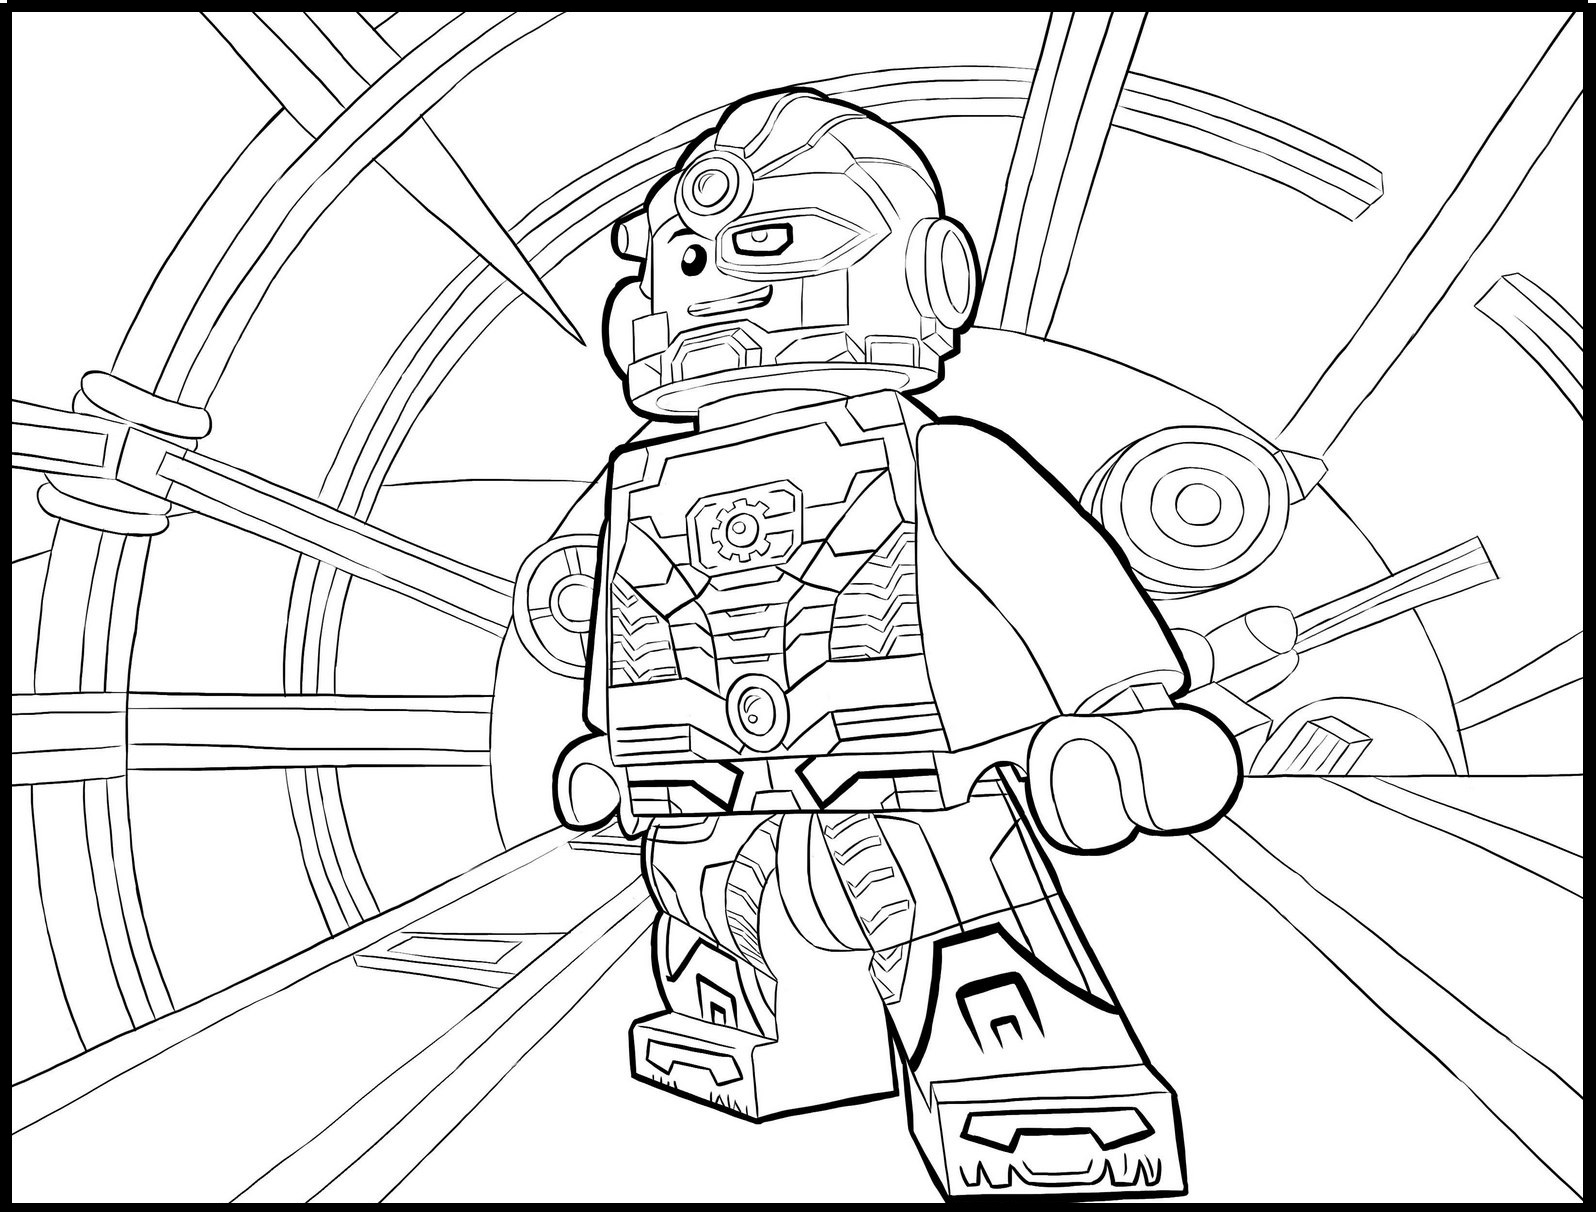 Lego Cyborg Coloring Sheet